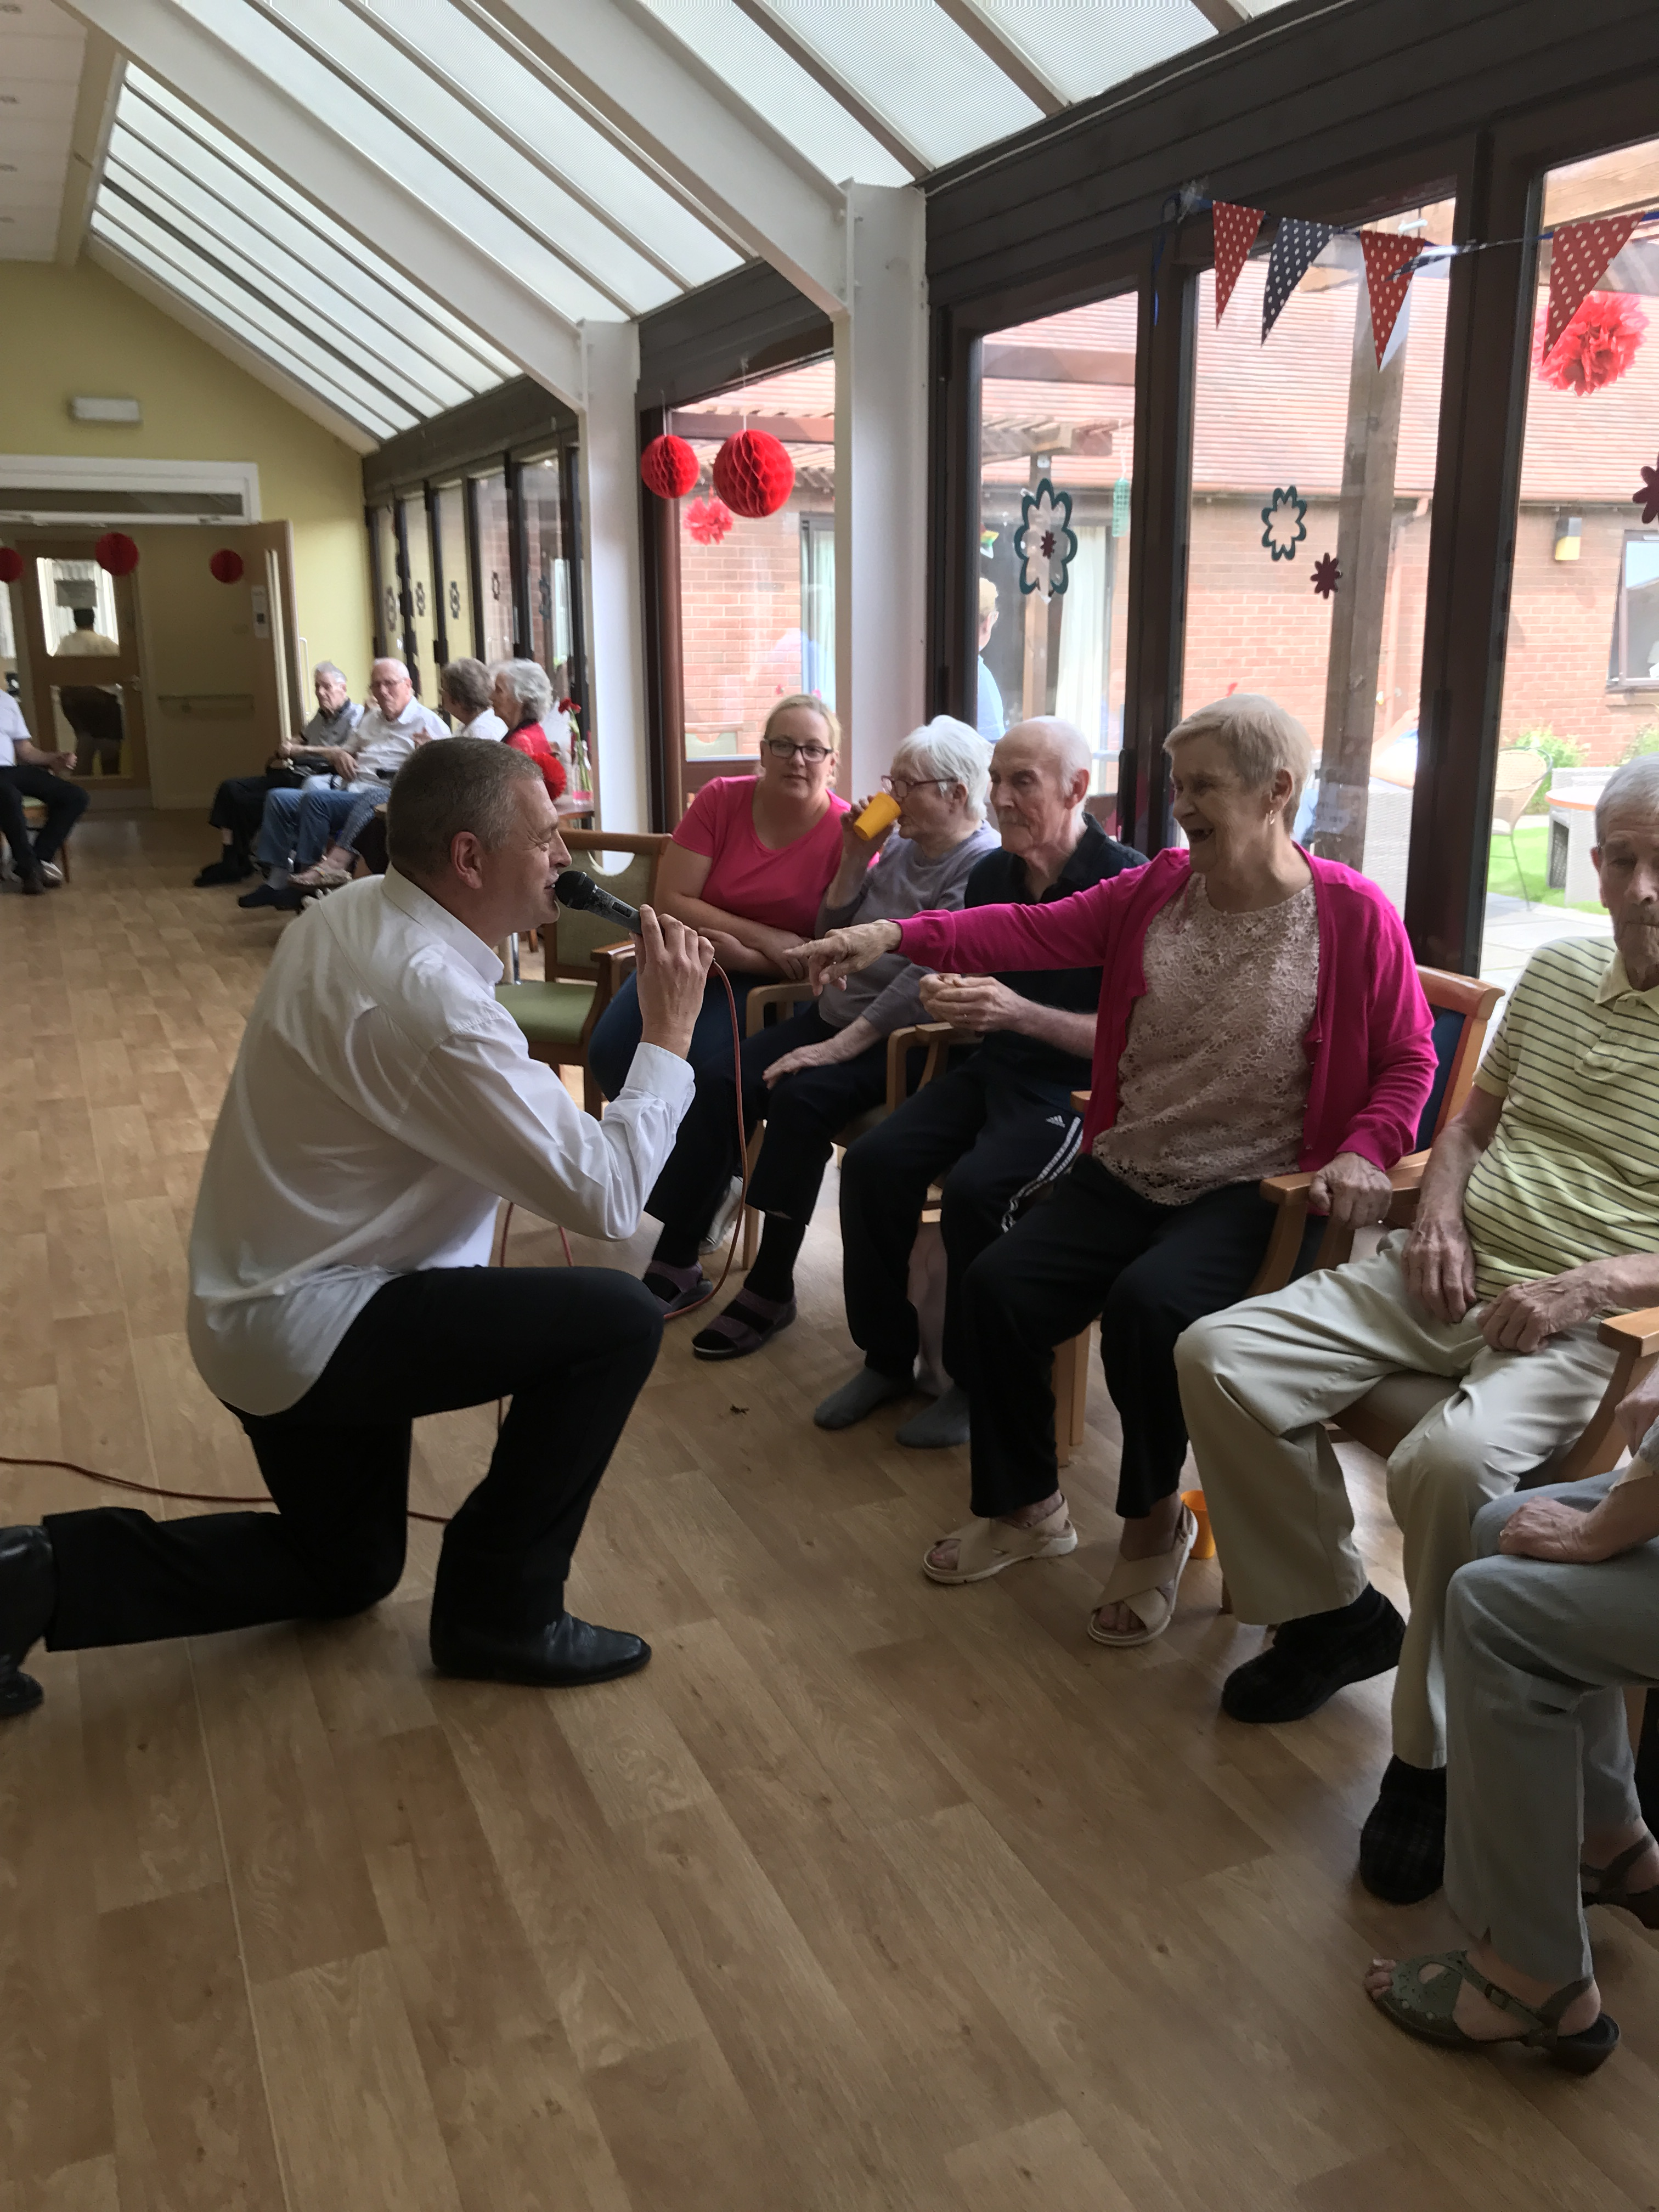 August Bank Holiday Party 2017 at Grace Court Care Centre: Key Healthcare is dedicated to caring for elderly residents in safe. We have multiple dementia care homes including our care home middlesbrough, our care home St. Helen and care home saltburn. We excel in monitoring and improving care levels.